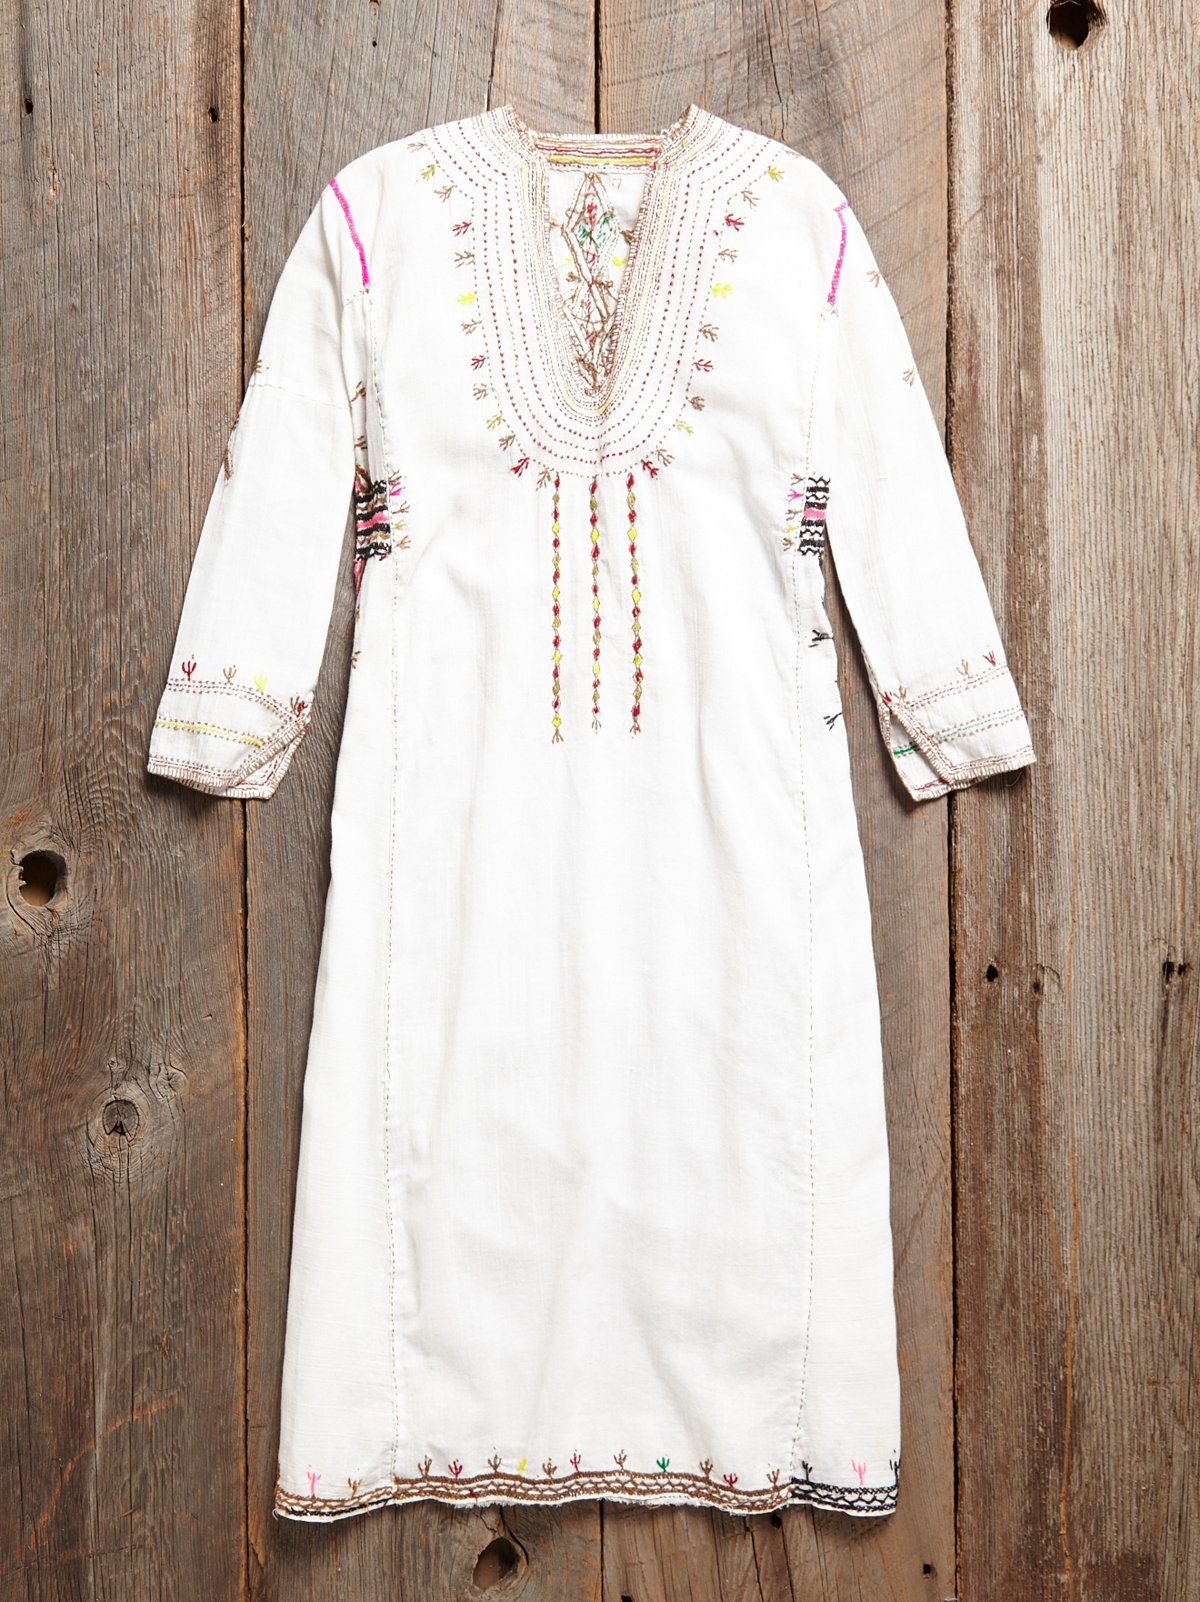 Vintage embroidered dress at free people clothing boutique